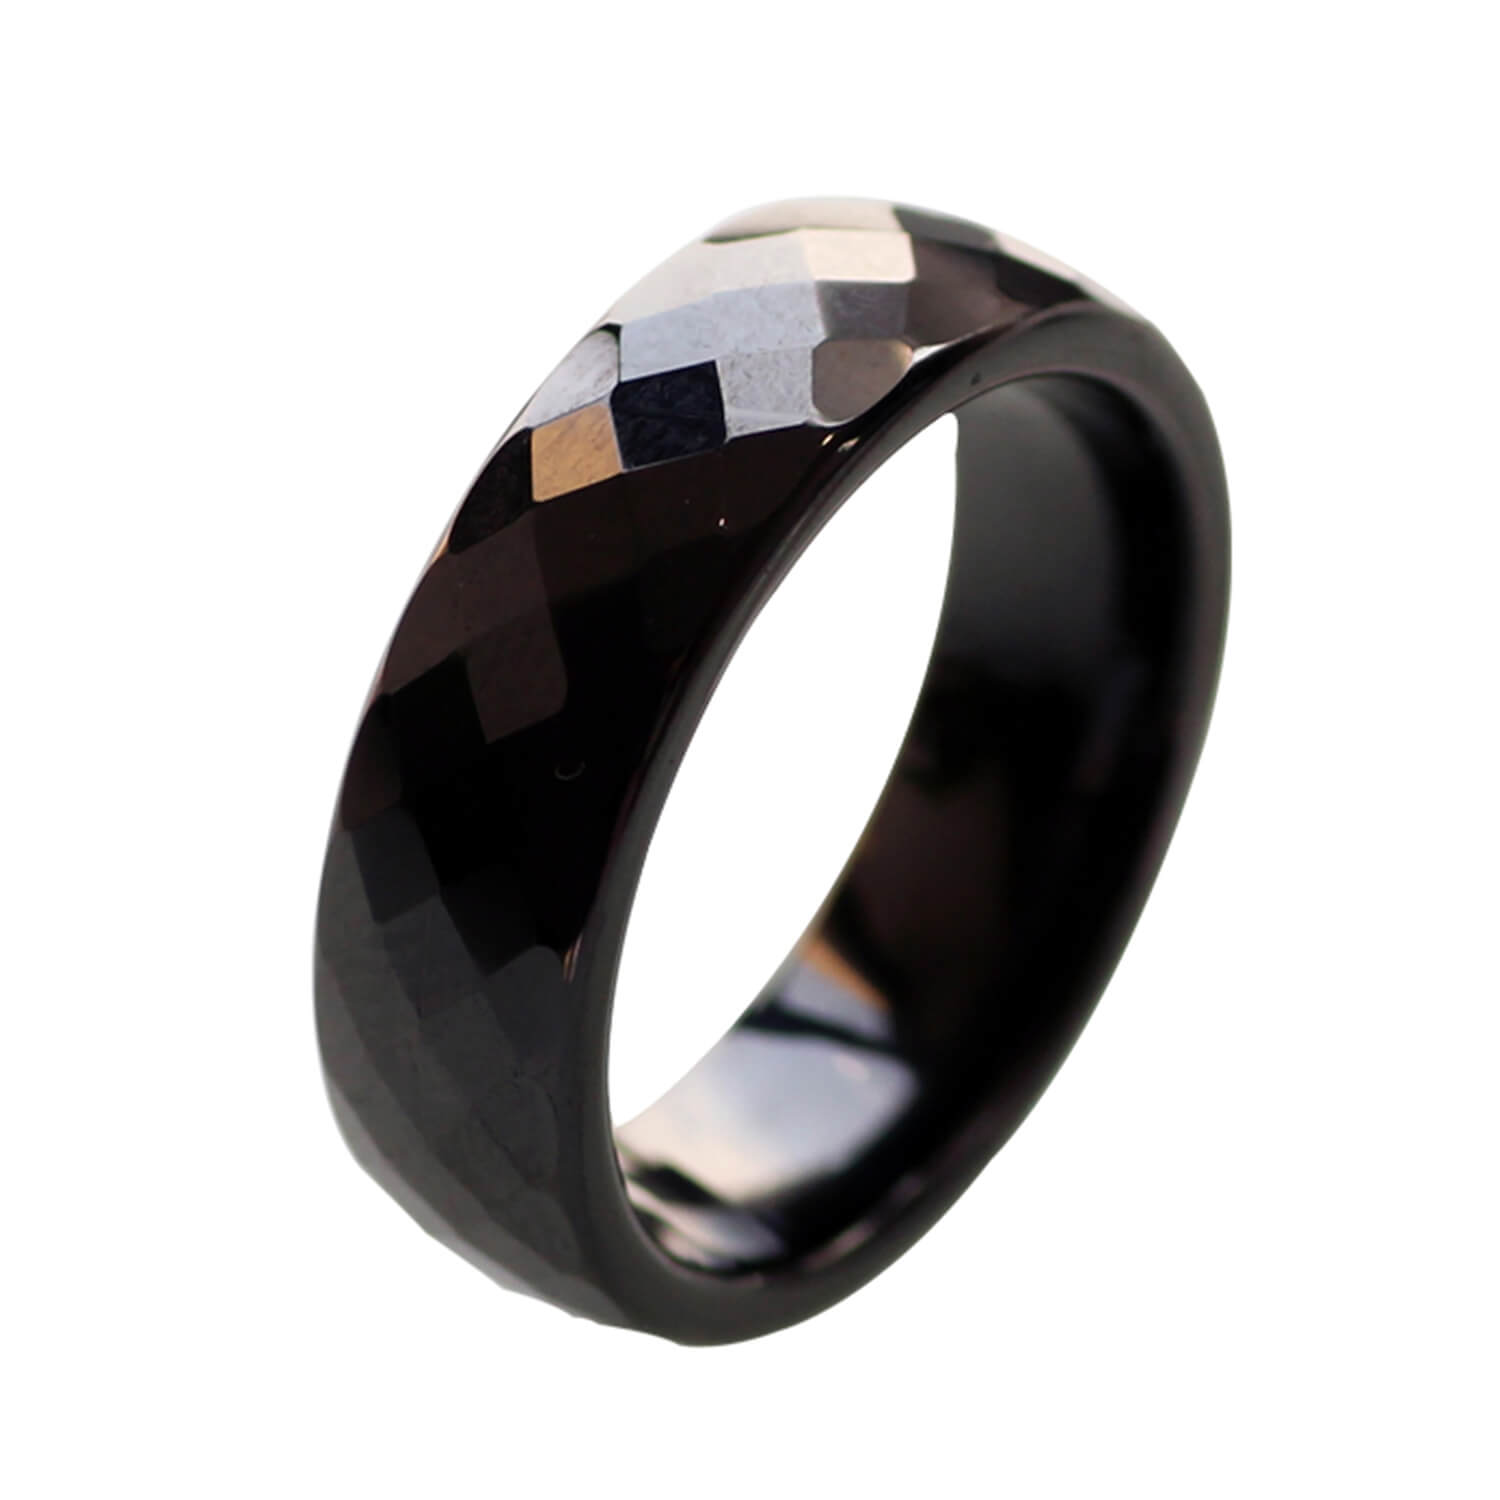 Ceramic Wedding Bands For Women Black Polished Finish Faceted Wedding Ring Comfort Fit Featured Image